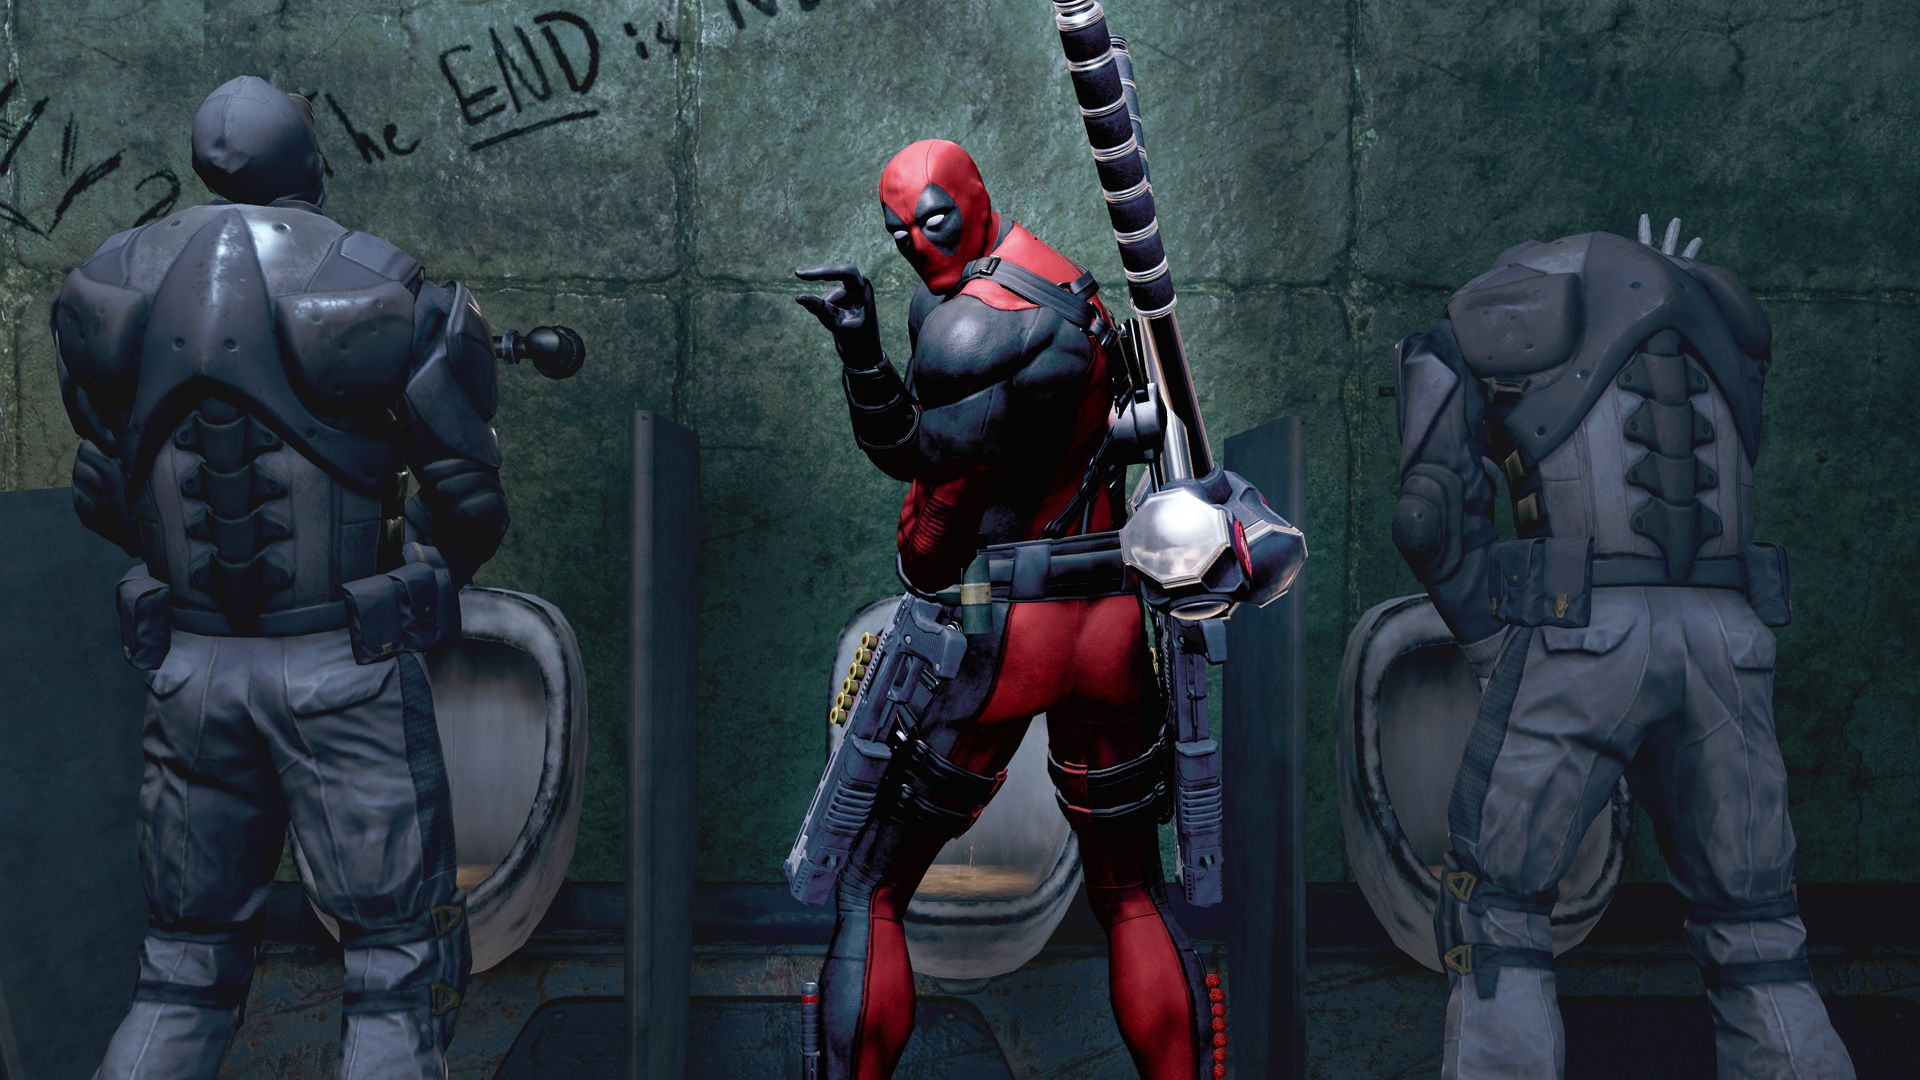 Deadpool Ps3 Wallpapers Top Free Deadpool Ps3 Backgrounds